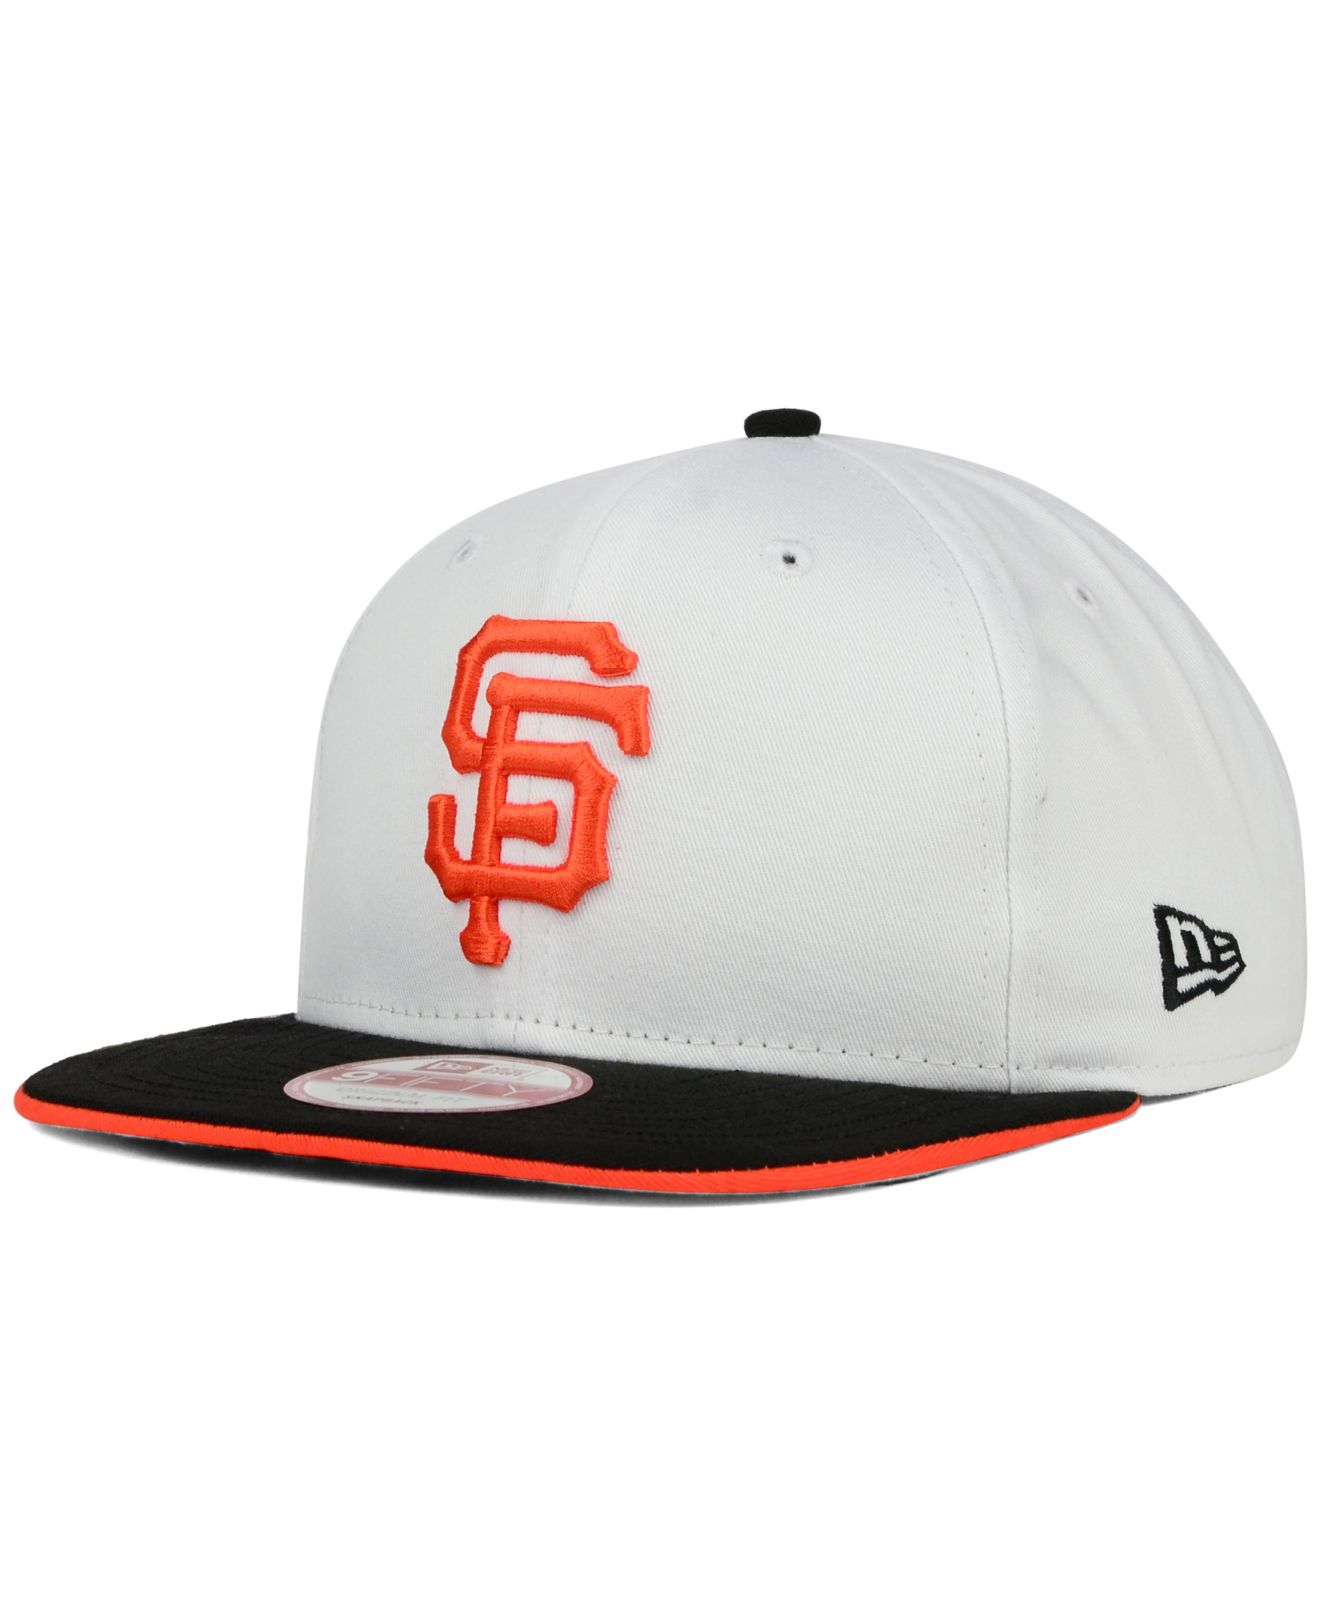 95a4171360c Lyst - KTZ San Francisco Giants Under Snapper 9fifty Snapback Cap in ...